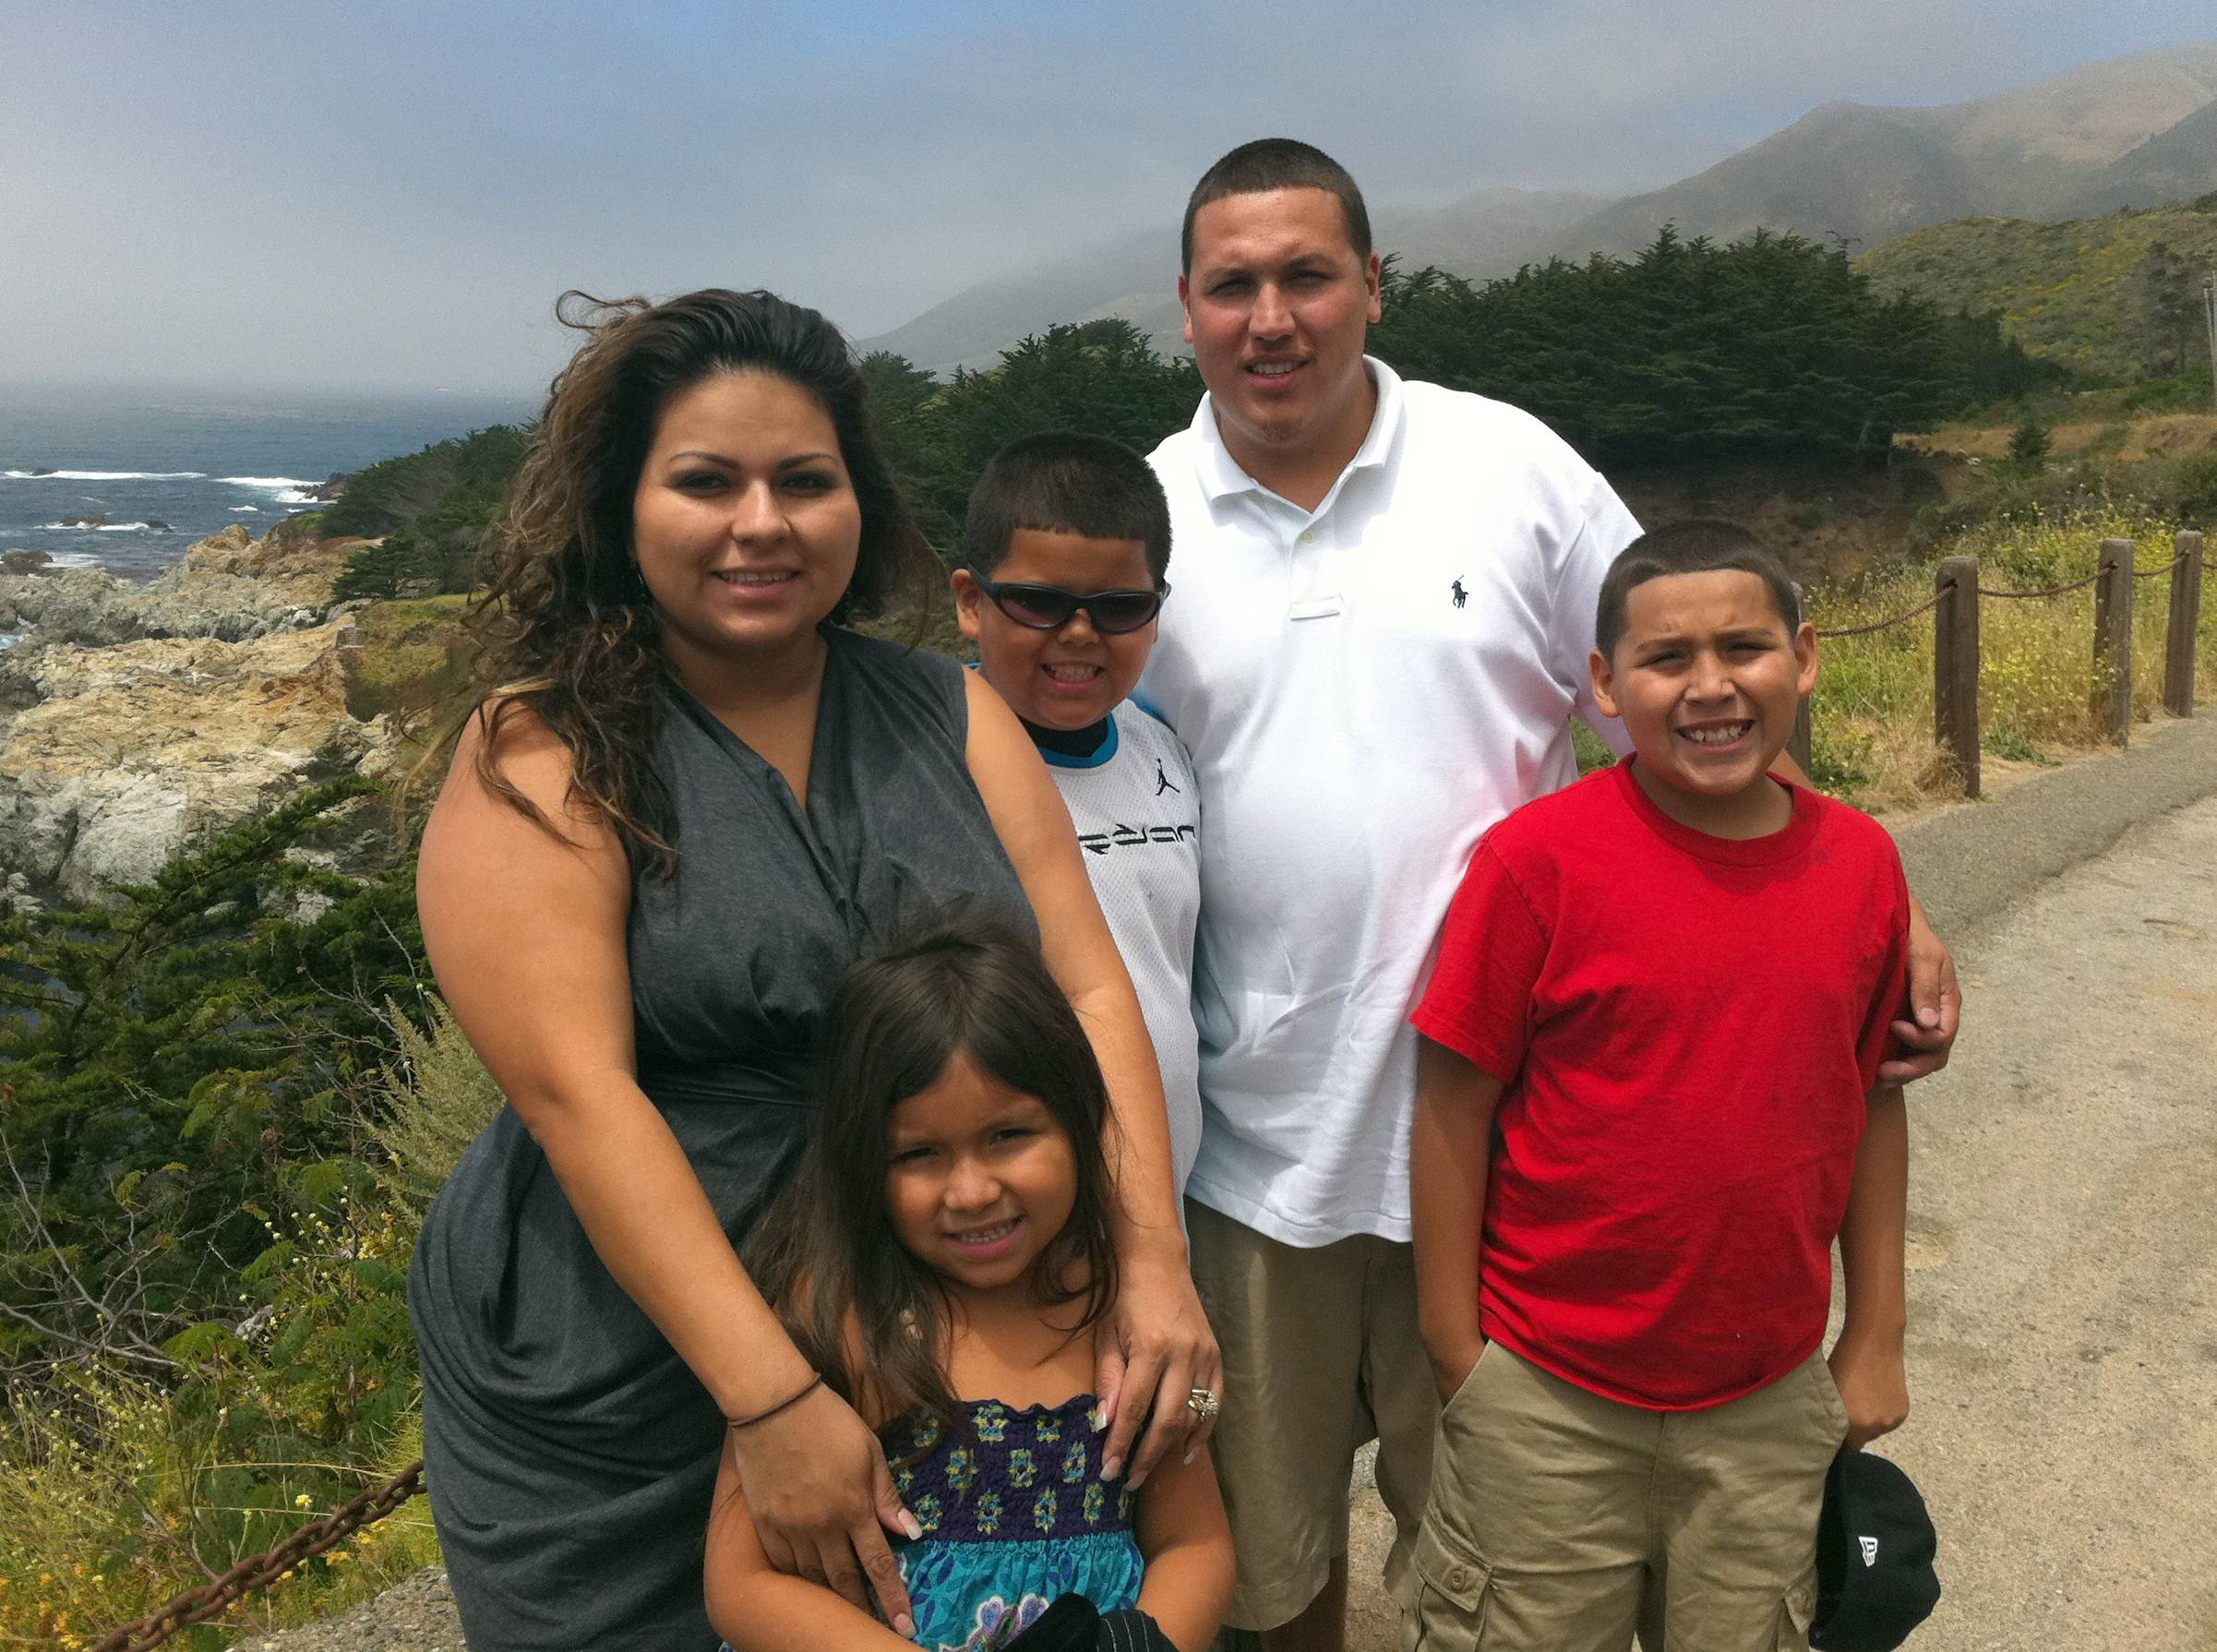 This undated photo provide by the Barajas family shows from left, Cindy Barajas, Jenessah Barajas, Caleb Barajas, David Barajas and David Barajas Jr. Caleb and David Jr. were killed during a Dec. 7, 2012, accident near their home in Alvin, Texas, as the boys and their father were pushing their truck on a rural road after it had broken down. Authorities say 20-year-old Jose Banda was intoxicated when he slammed his vehicle into the truck, killing the brothers. The boys' father was charged with fatally shooting Banda minutes after the accident. His trial is set to begin Monday, Aug 18.